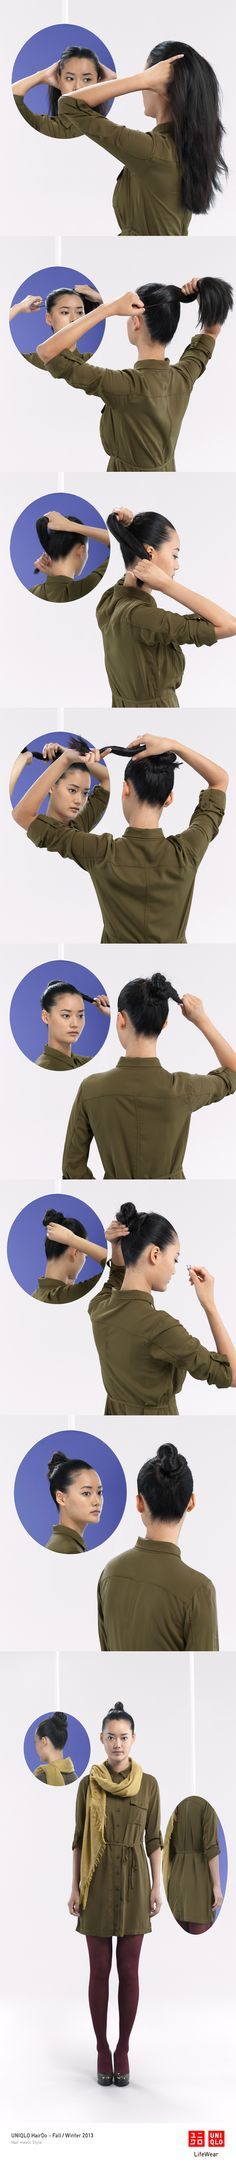 """""""THE LILY KNOT"""" : Ideal for many occasions, this bun works well with our silk dress and scarf. Click on the image to check DIY instructions! #Bun #Hair #Hairstyle #DIY #UNIQLO #HairDo"""